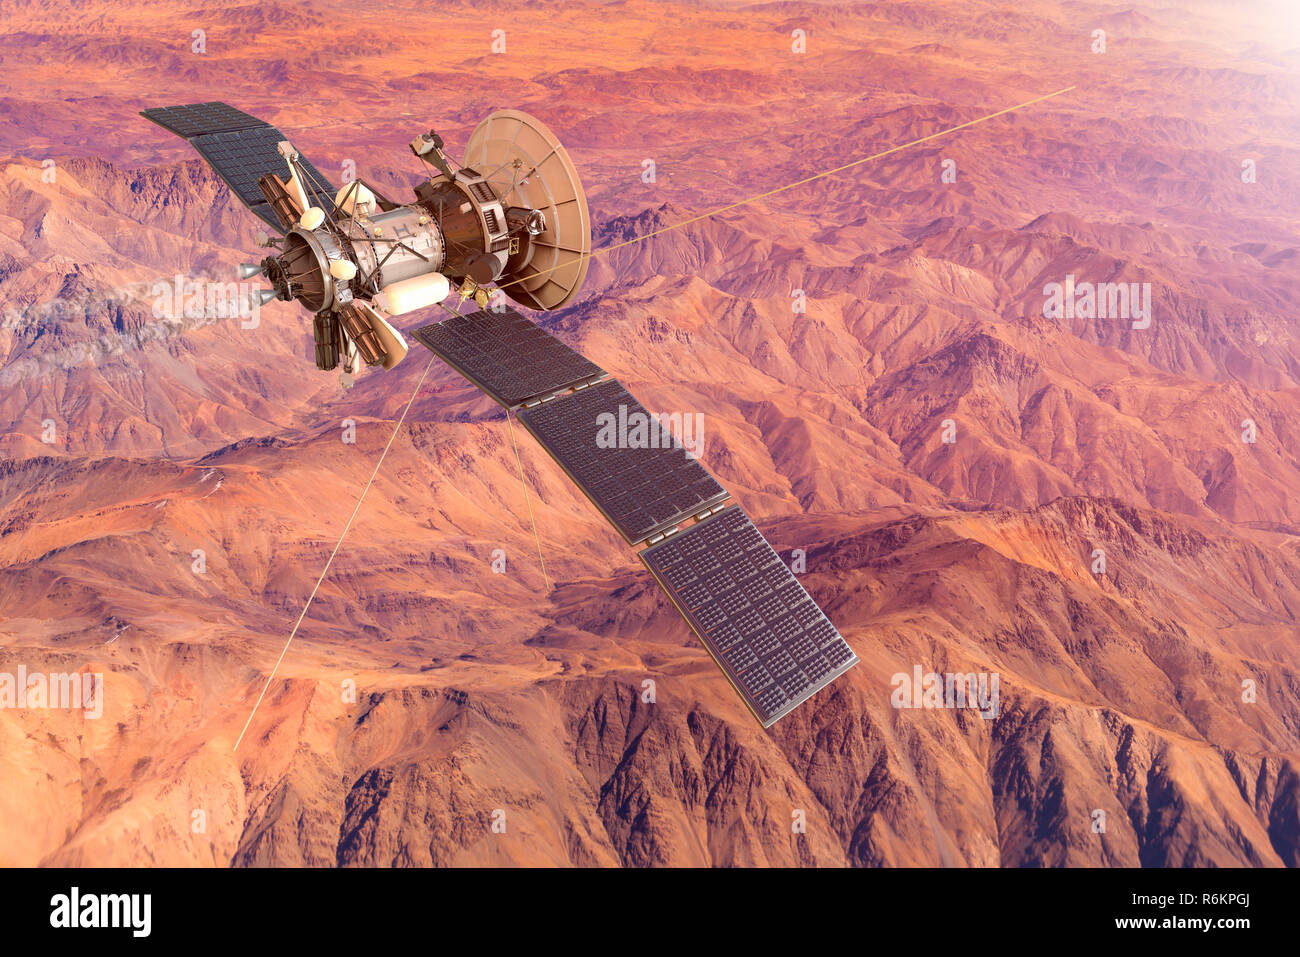 3D rendering of a conceptual image of a spacecraft exploring Mars - Stock Image